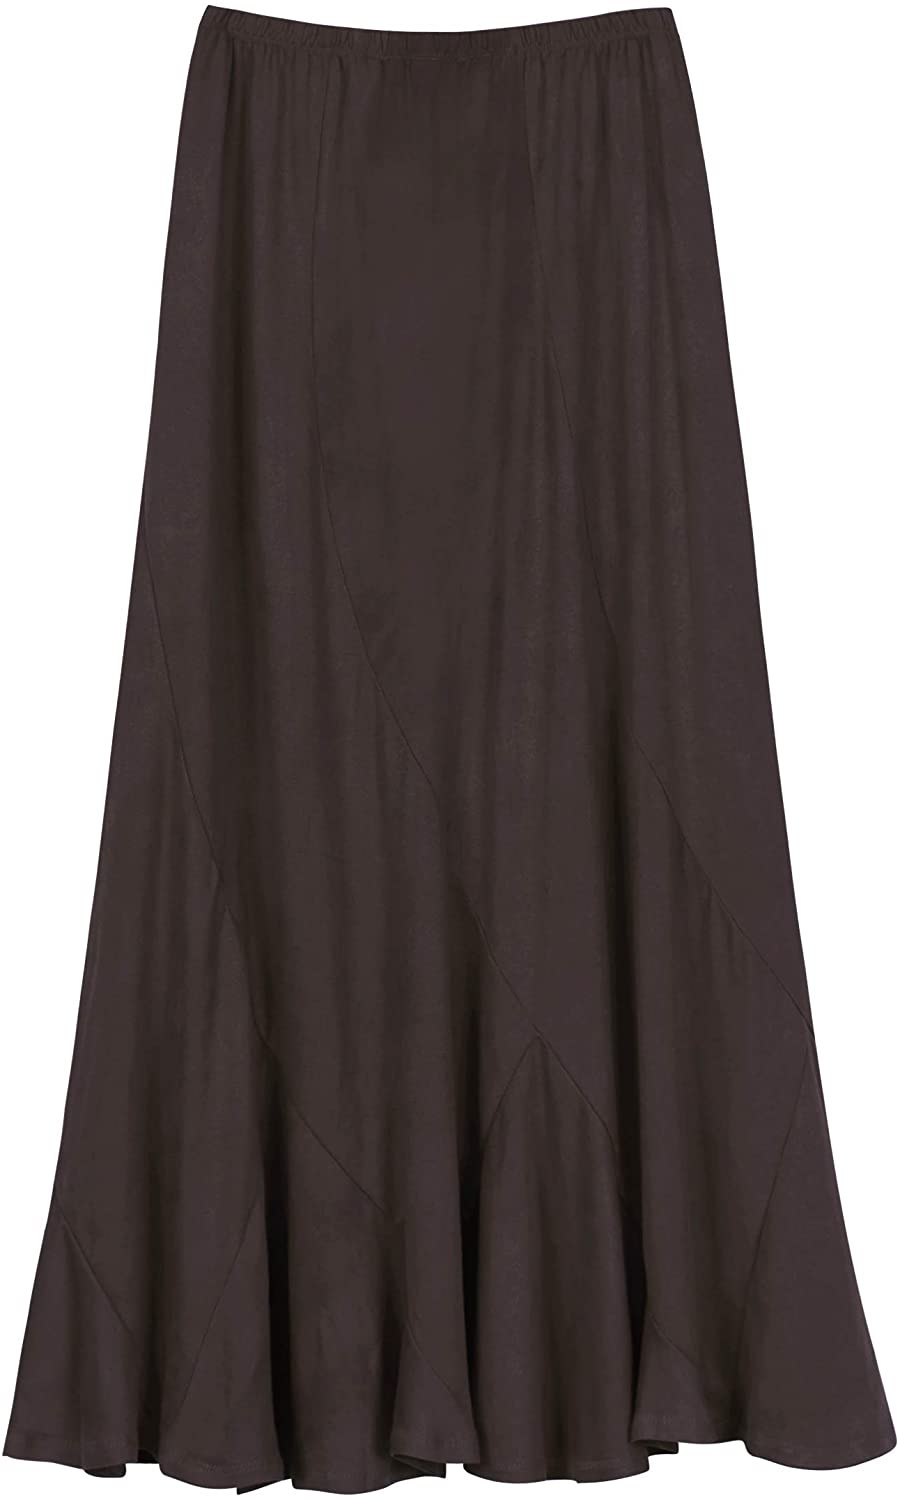 Easy-to-use Urban CoCo Women's Vintage Elastic A-Line Waist Midi Long Gifts Skirt